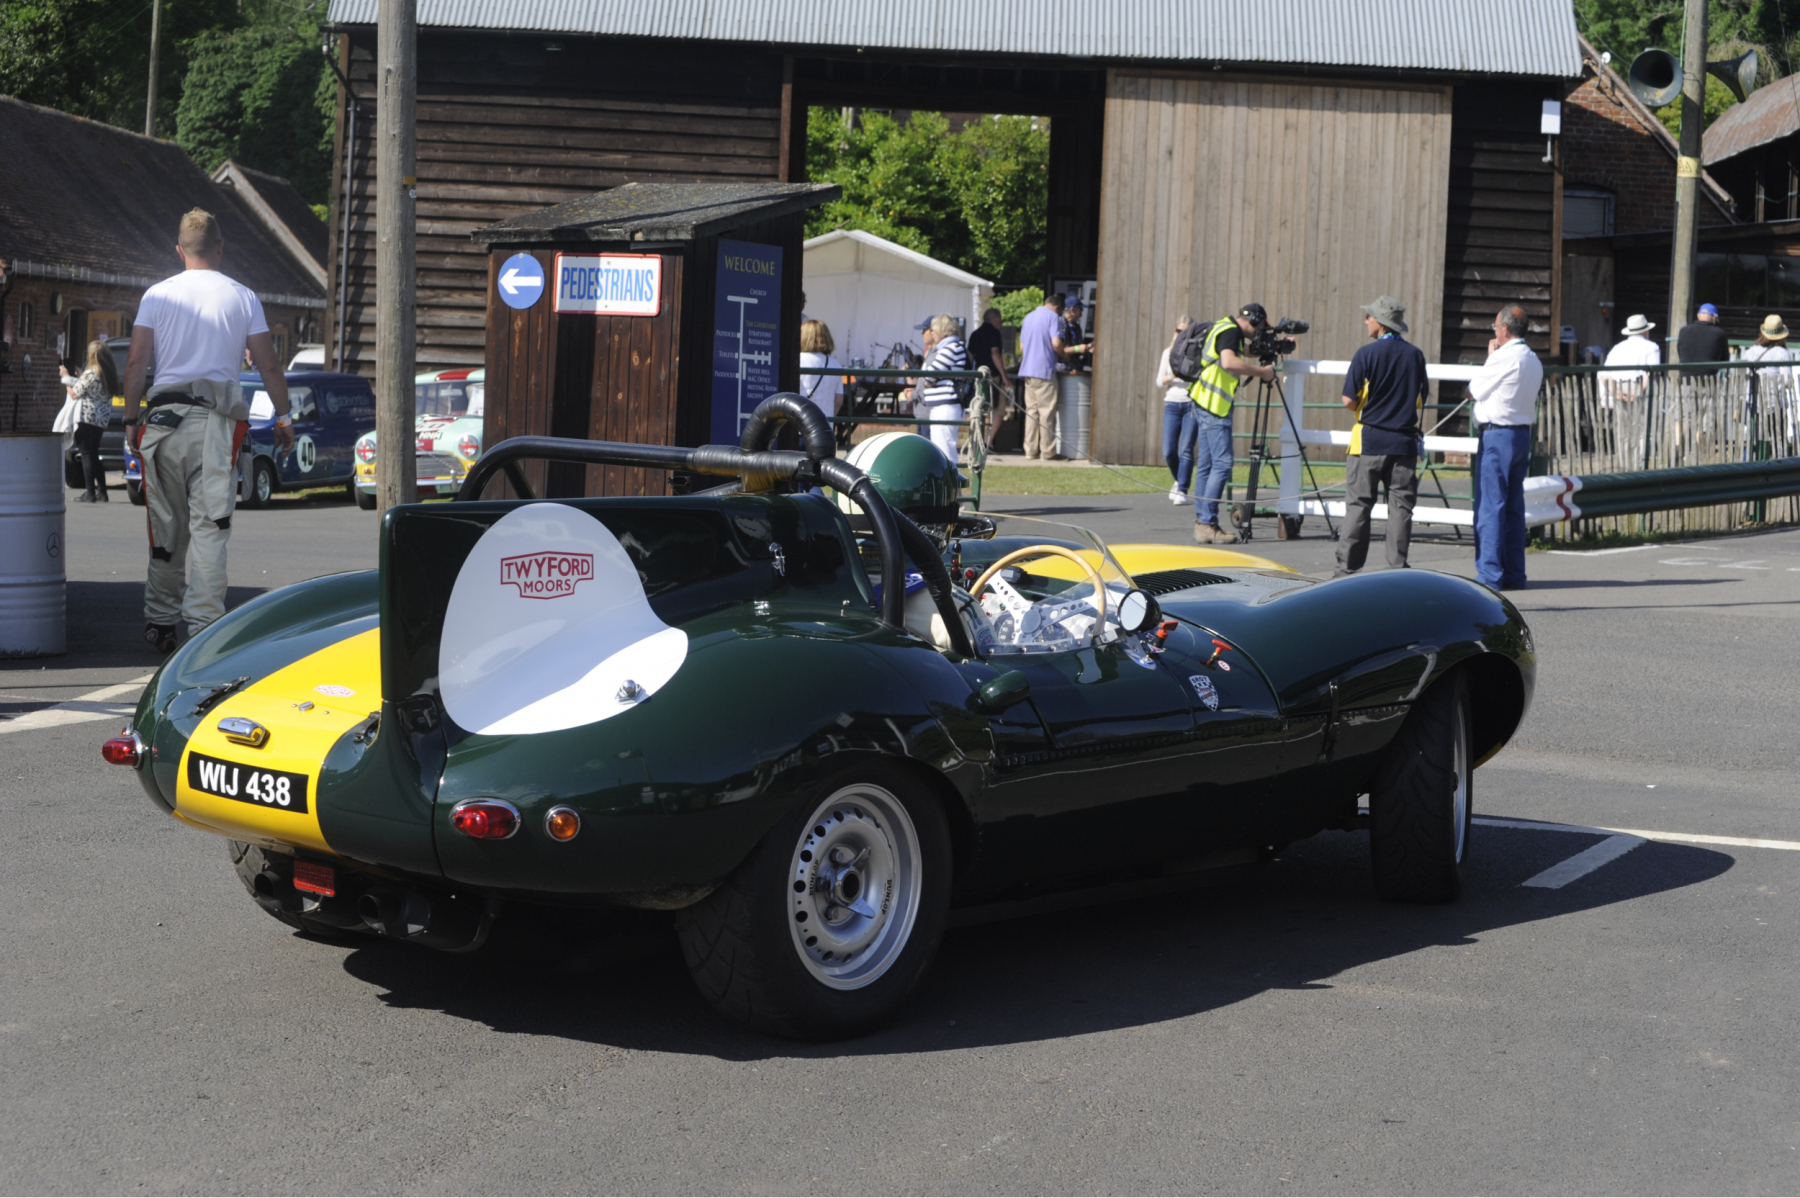 E-type-60-Saturday-photo-by-Abigail-Humphries-76